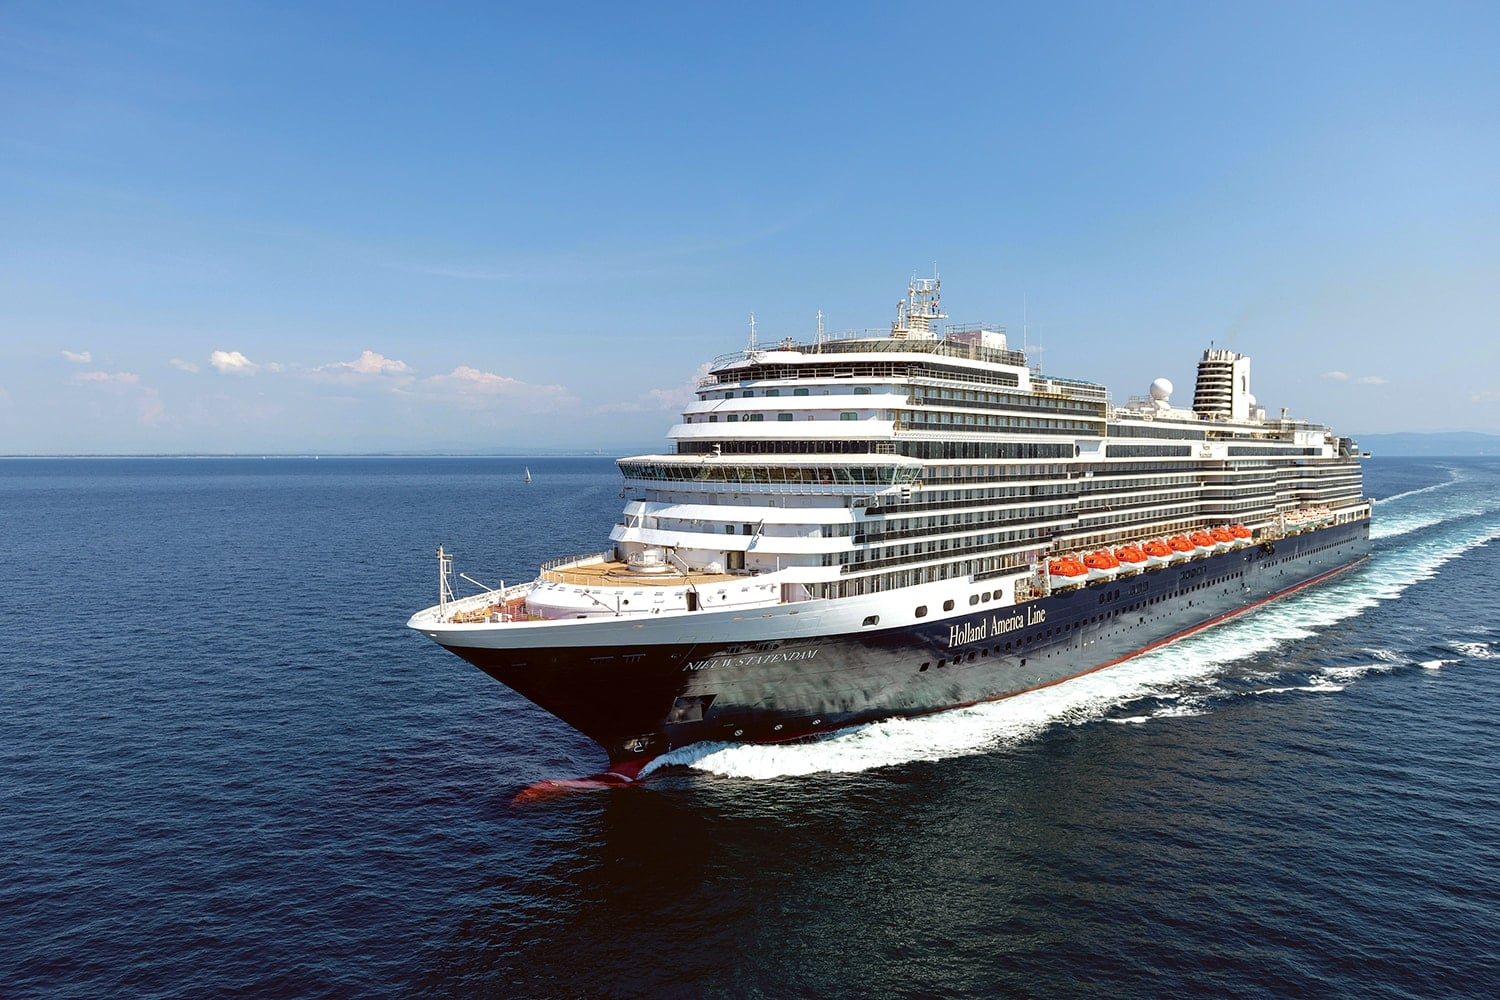 Holland America's New Style of Cruising on the Nieuw Statendam